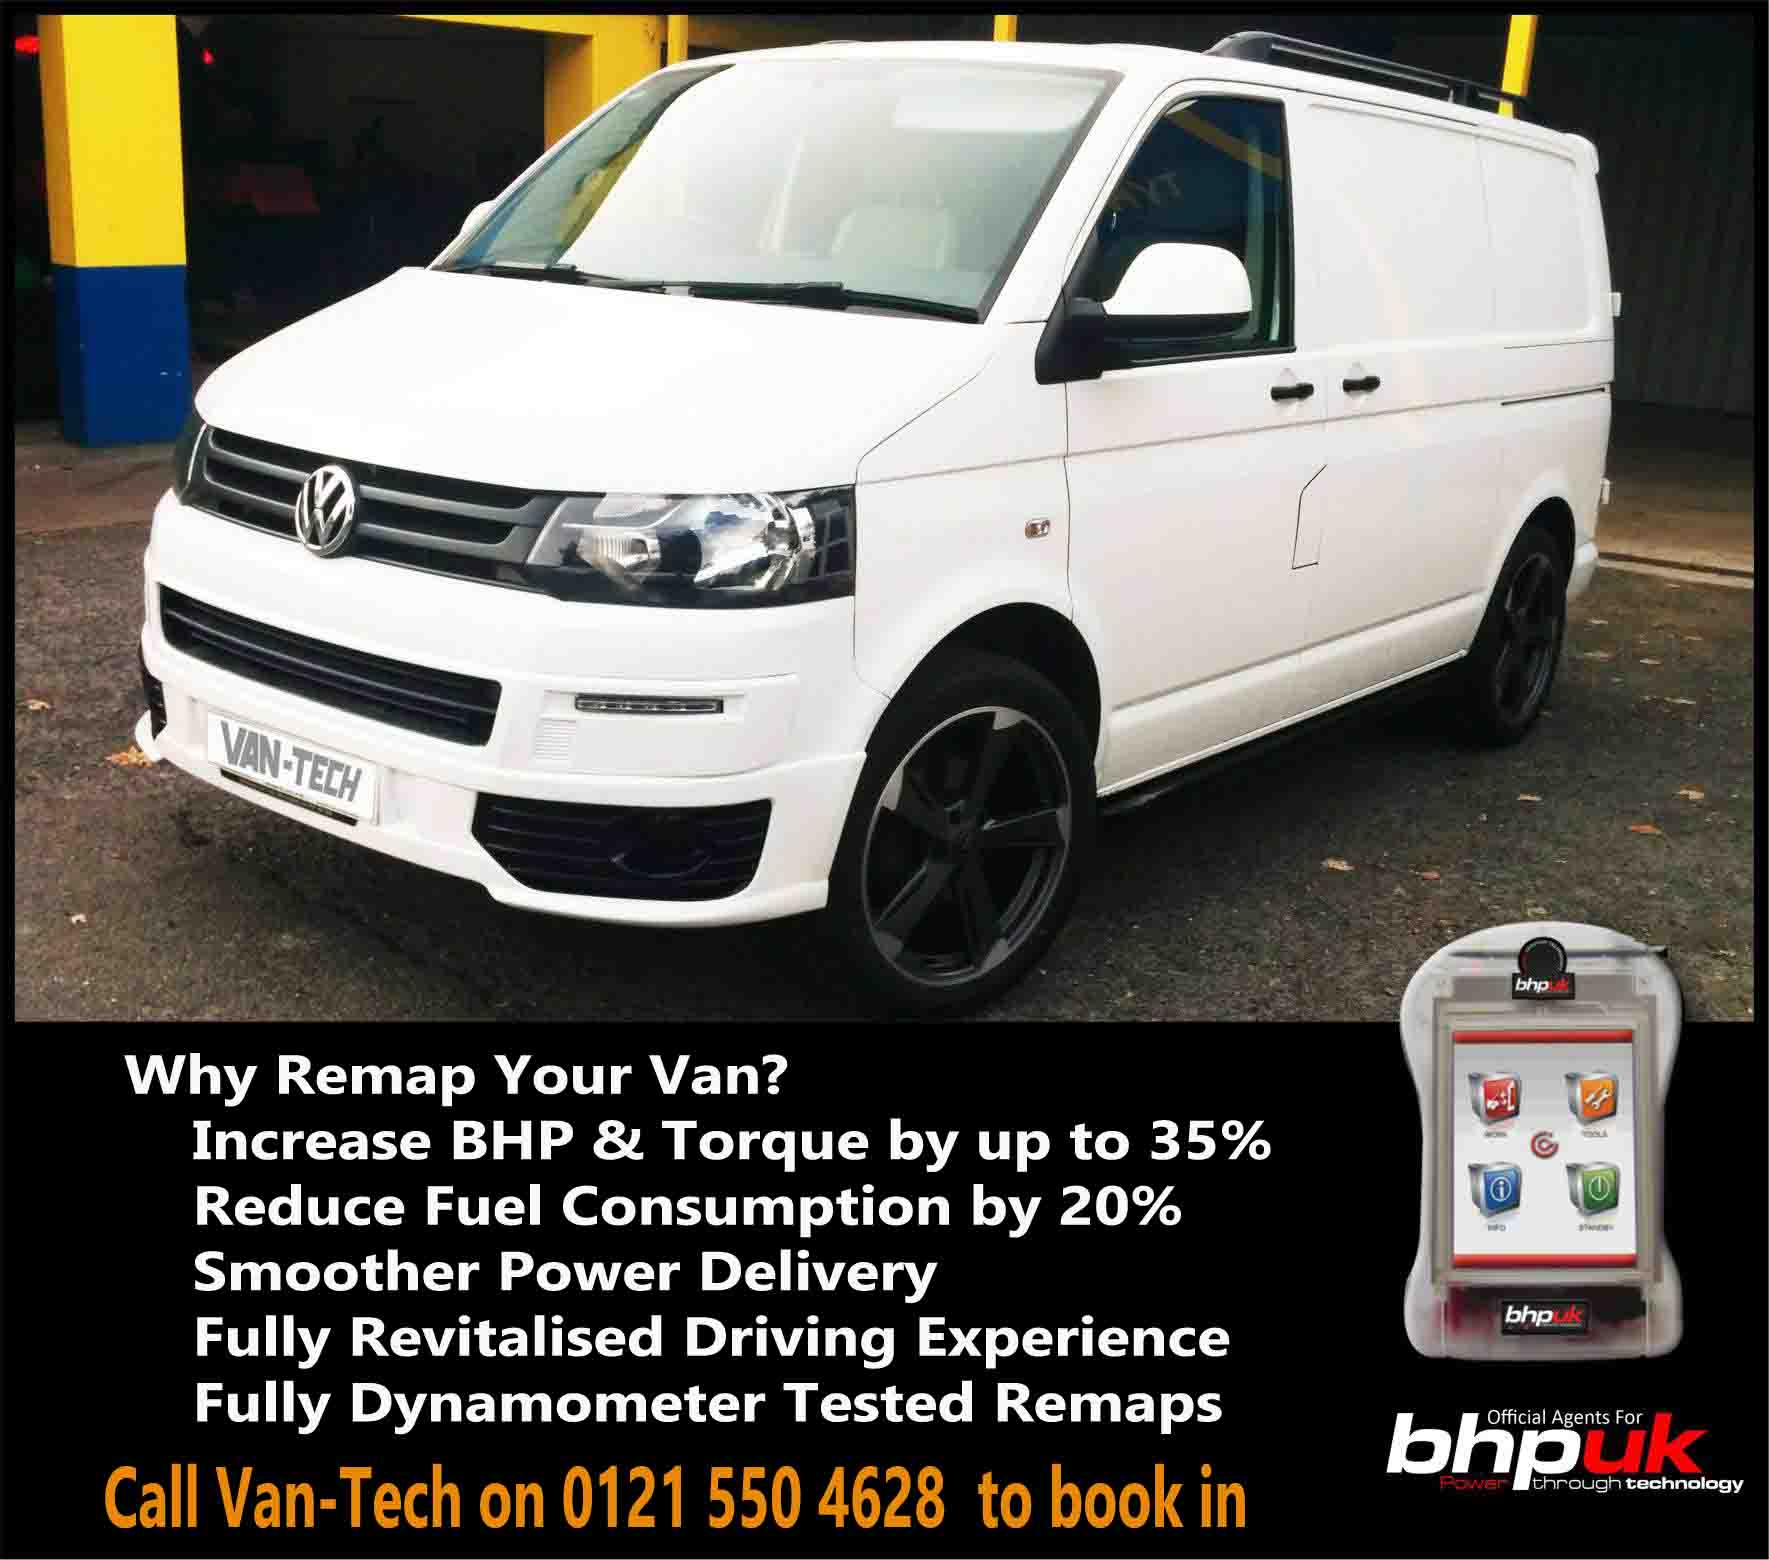 VW Transporter T5 ECU Remapping now available at Van-Tech